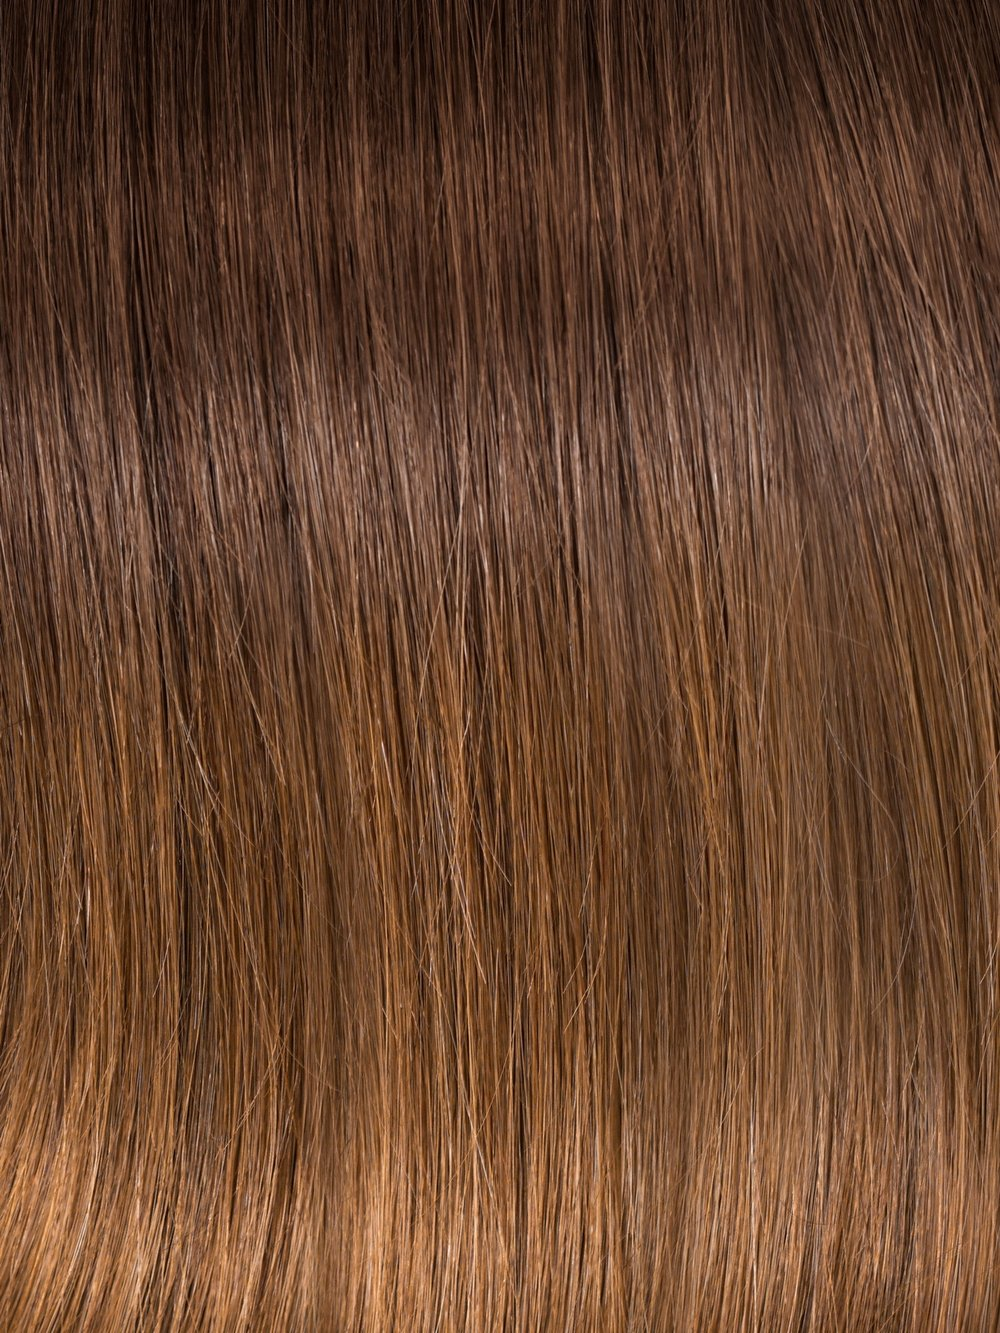 CHESTNUT BALAYAGE #T2/6 - Using a modern blending highlight technique, this set transitions from a deep dark brown color to a Chestnut Brown providing a seamless blend, perfect for beautifully subtle dimension.